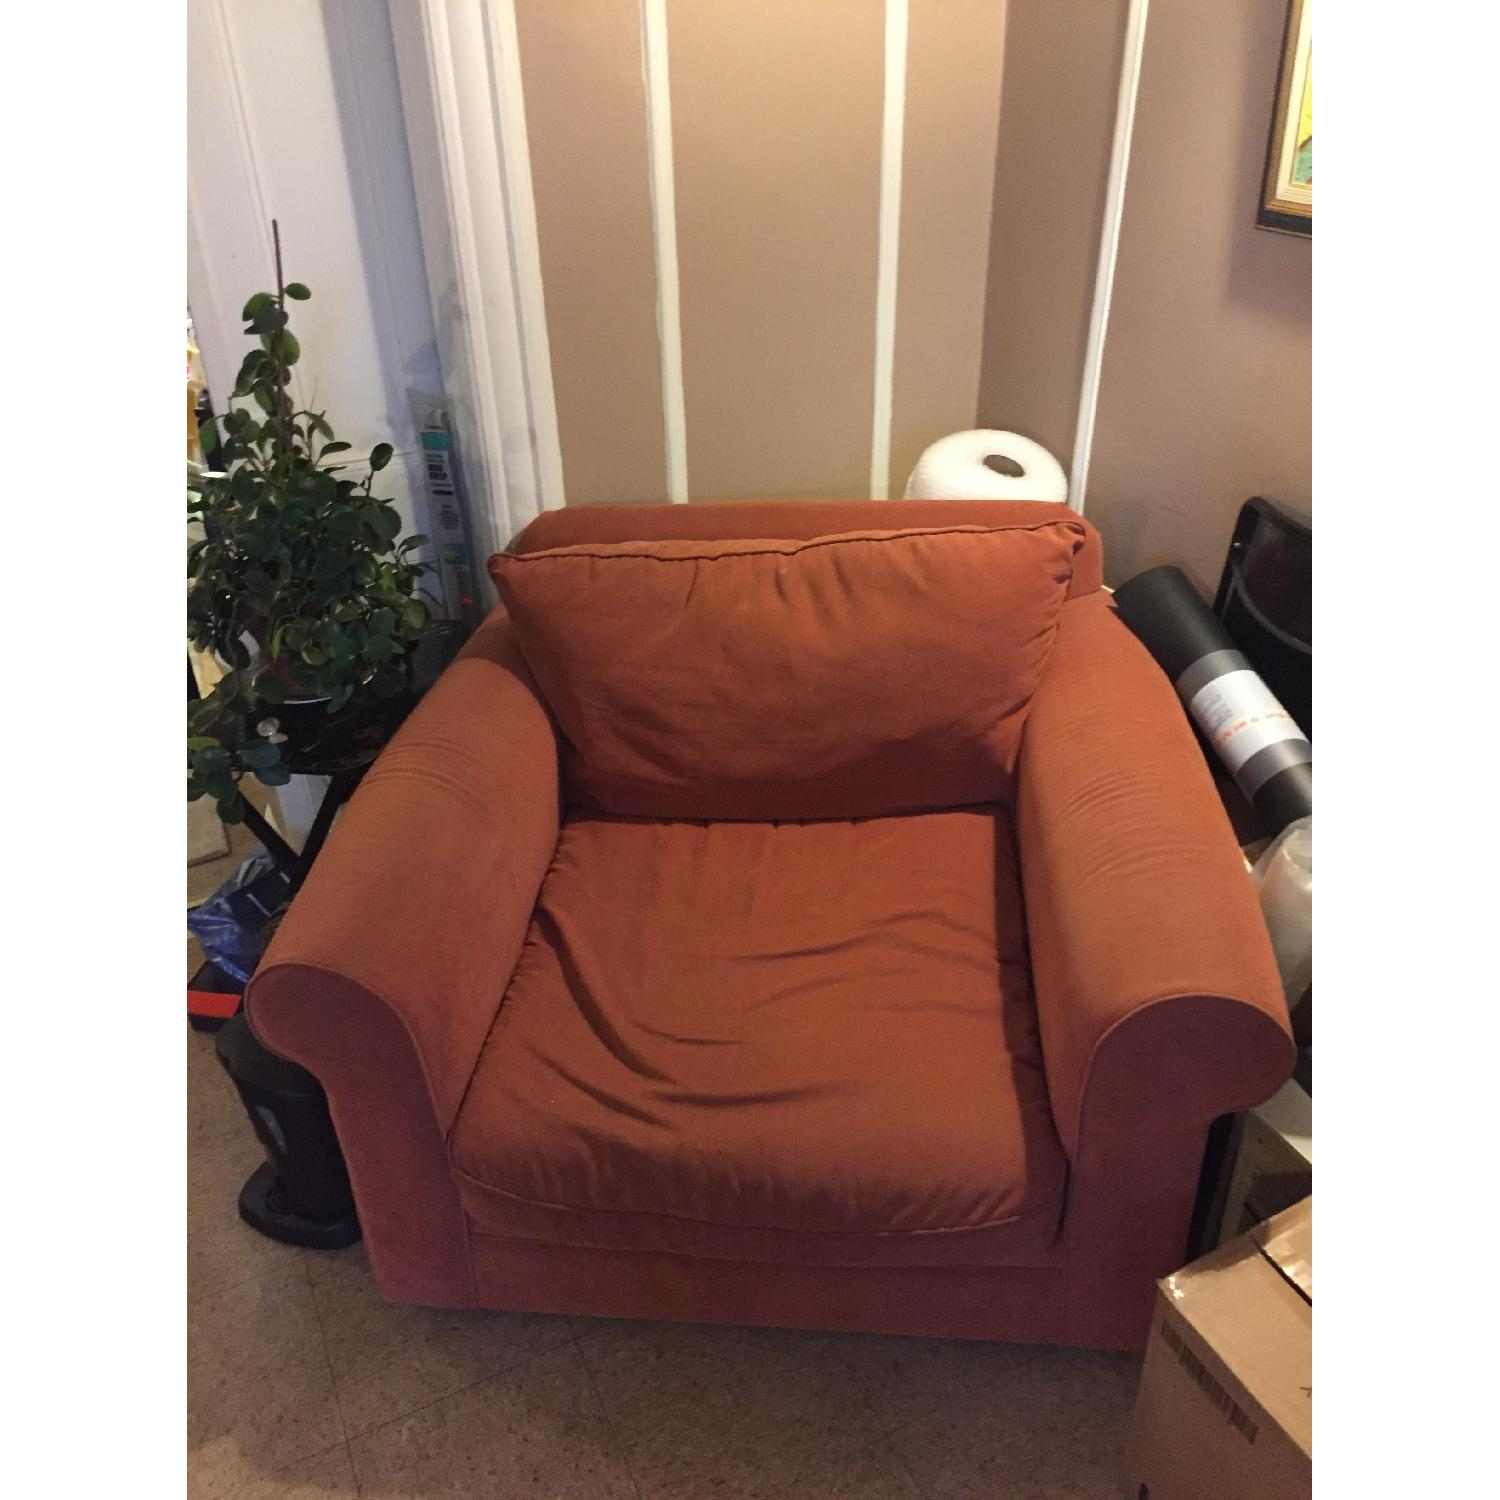 Orange Microsuede Armchair - image-4